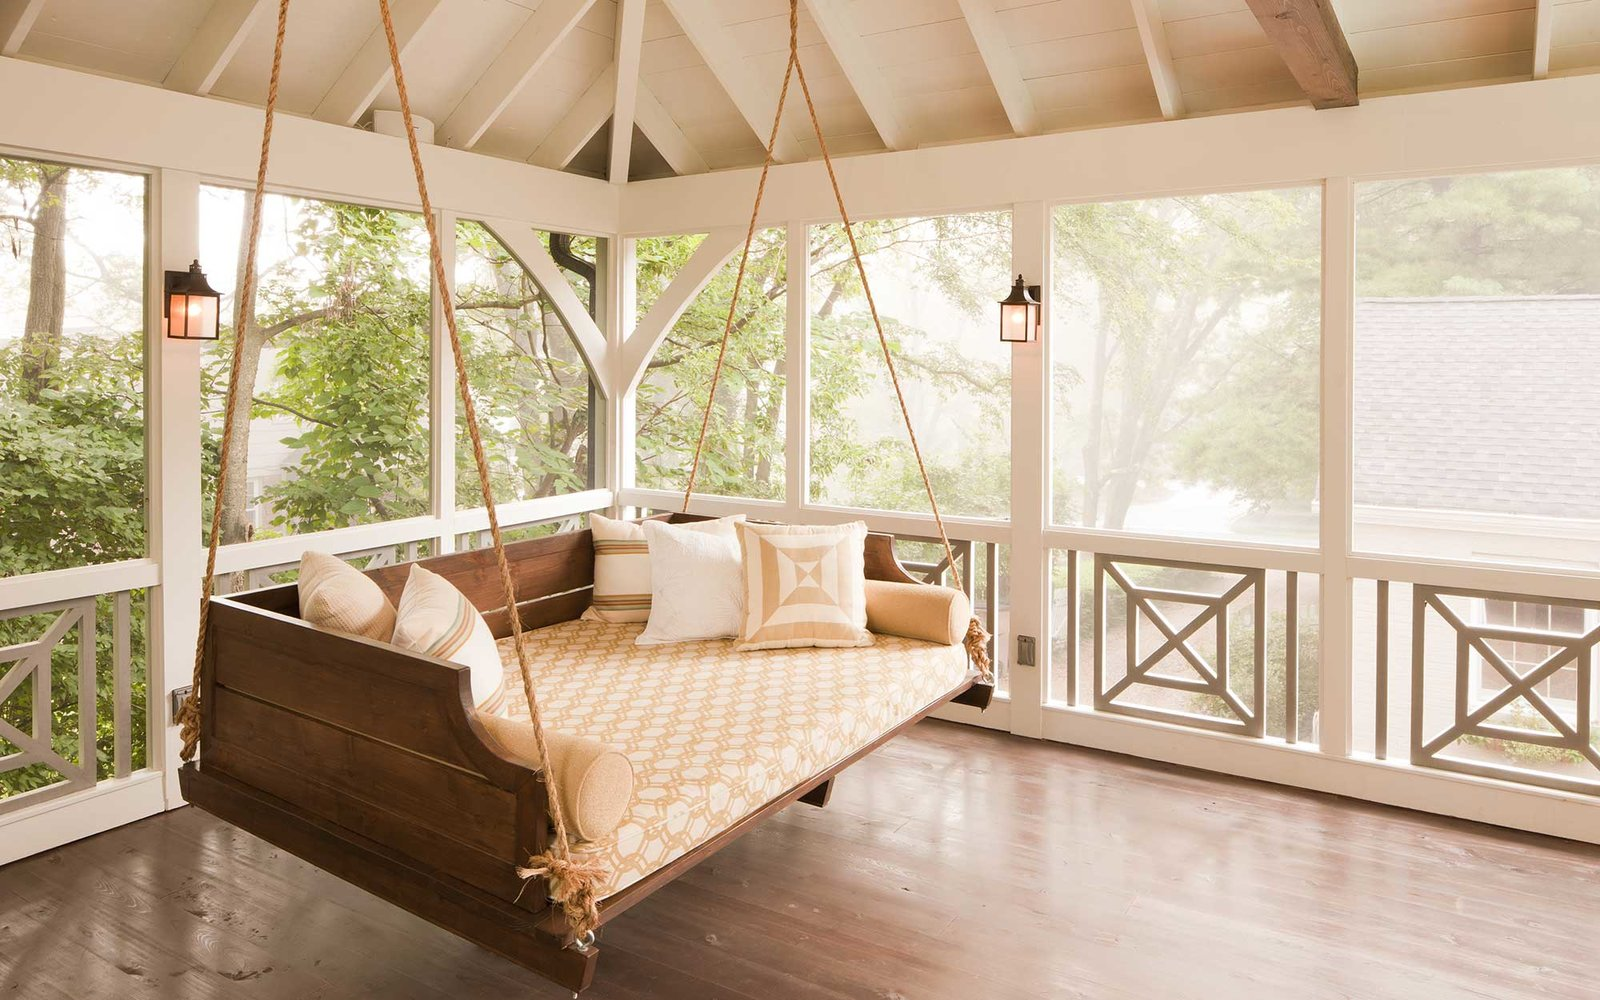 Large Comfortable Porch Swing in Screened Porch with Wooden Floor, Nashville, USA